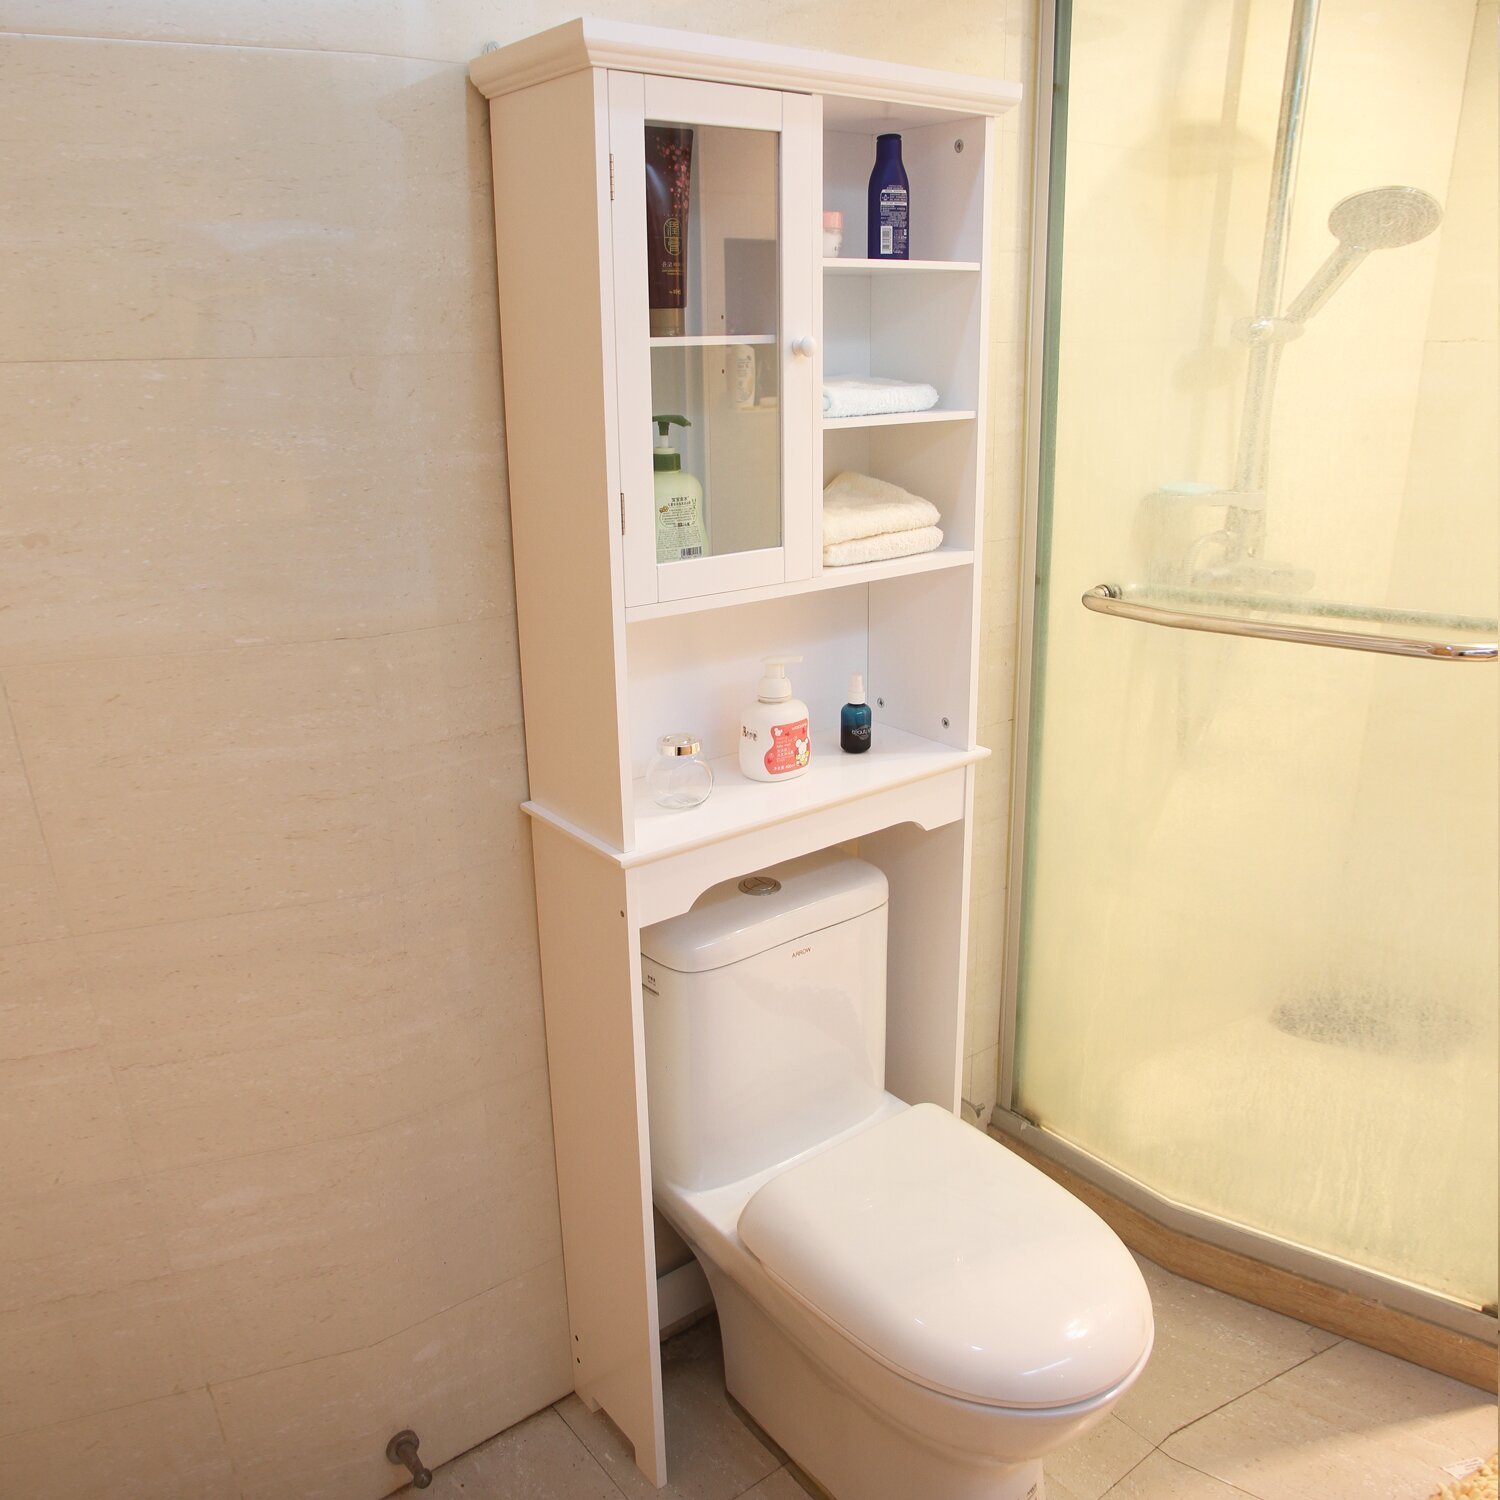 Adecotrading 24 Quot X 68 5 Quot Free Standing Over The Toilet